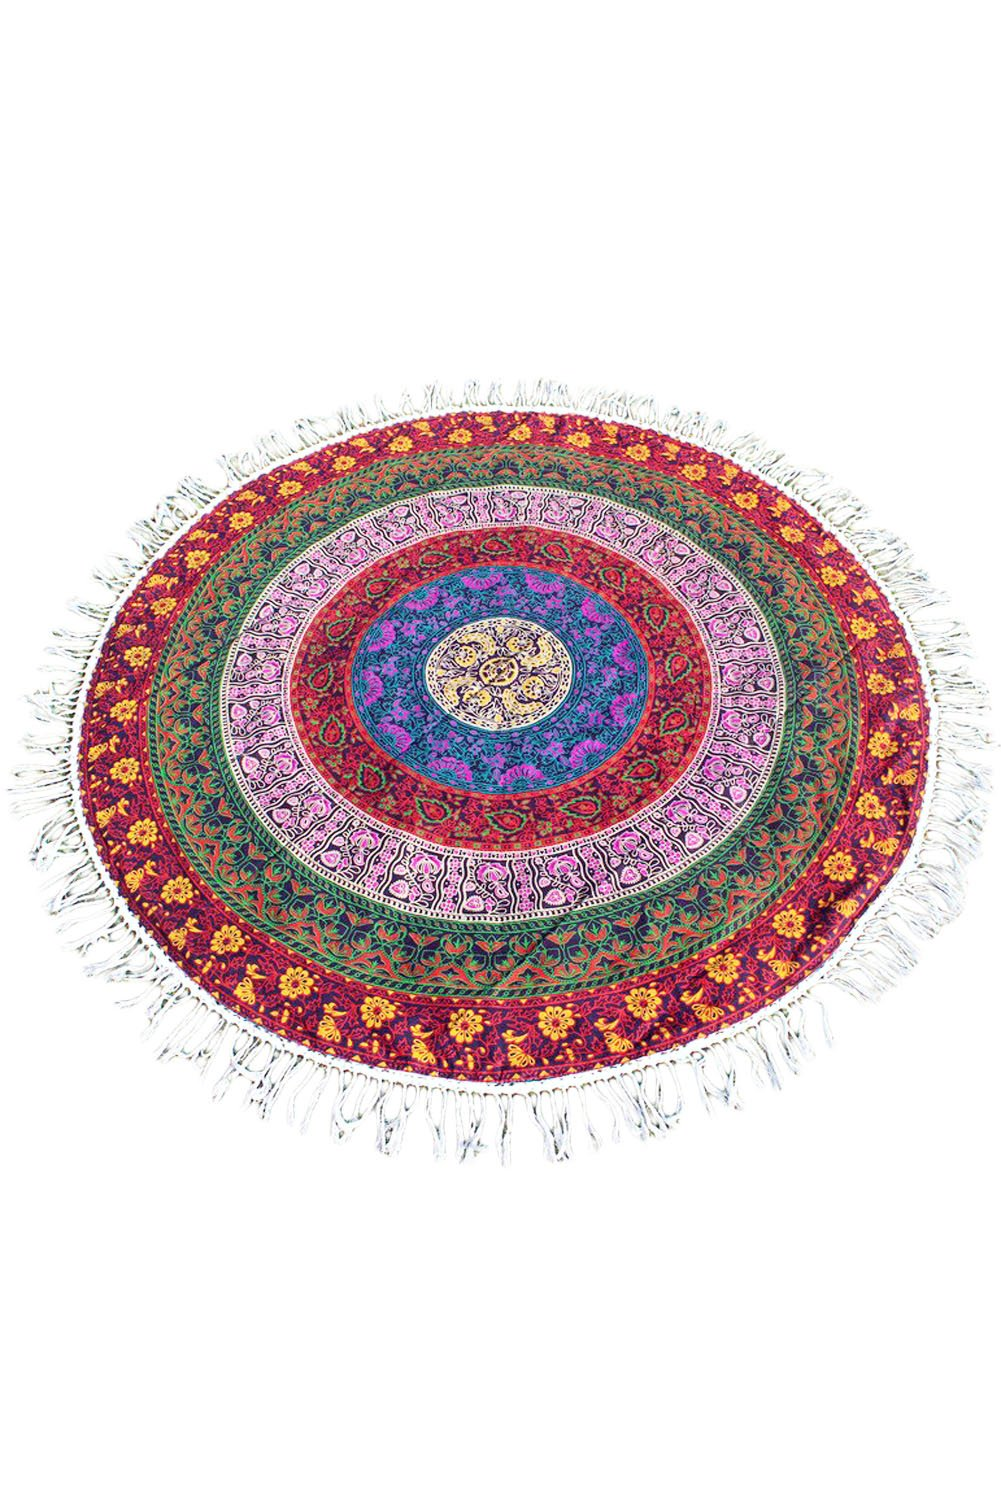 Prime Leader Cotton Mandala Round Tapestry Yoga Mat Beach Cover 63